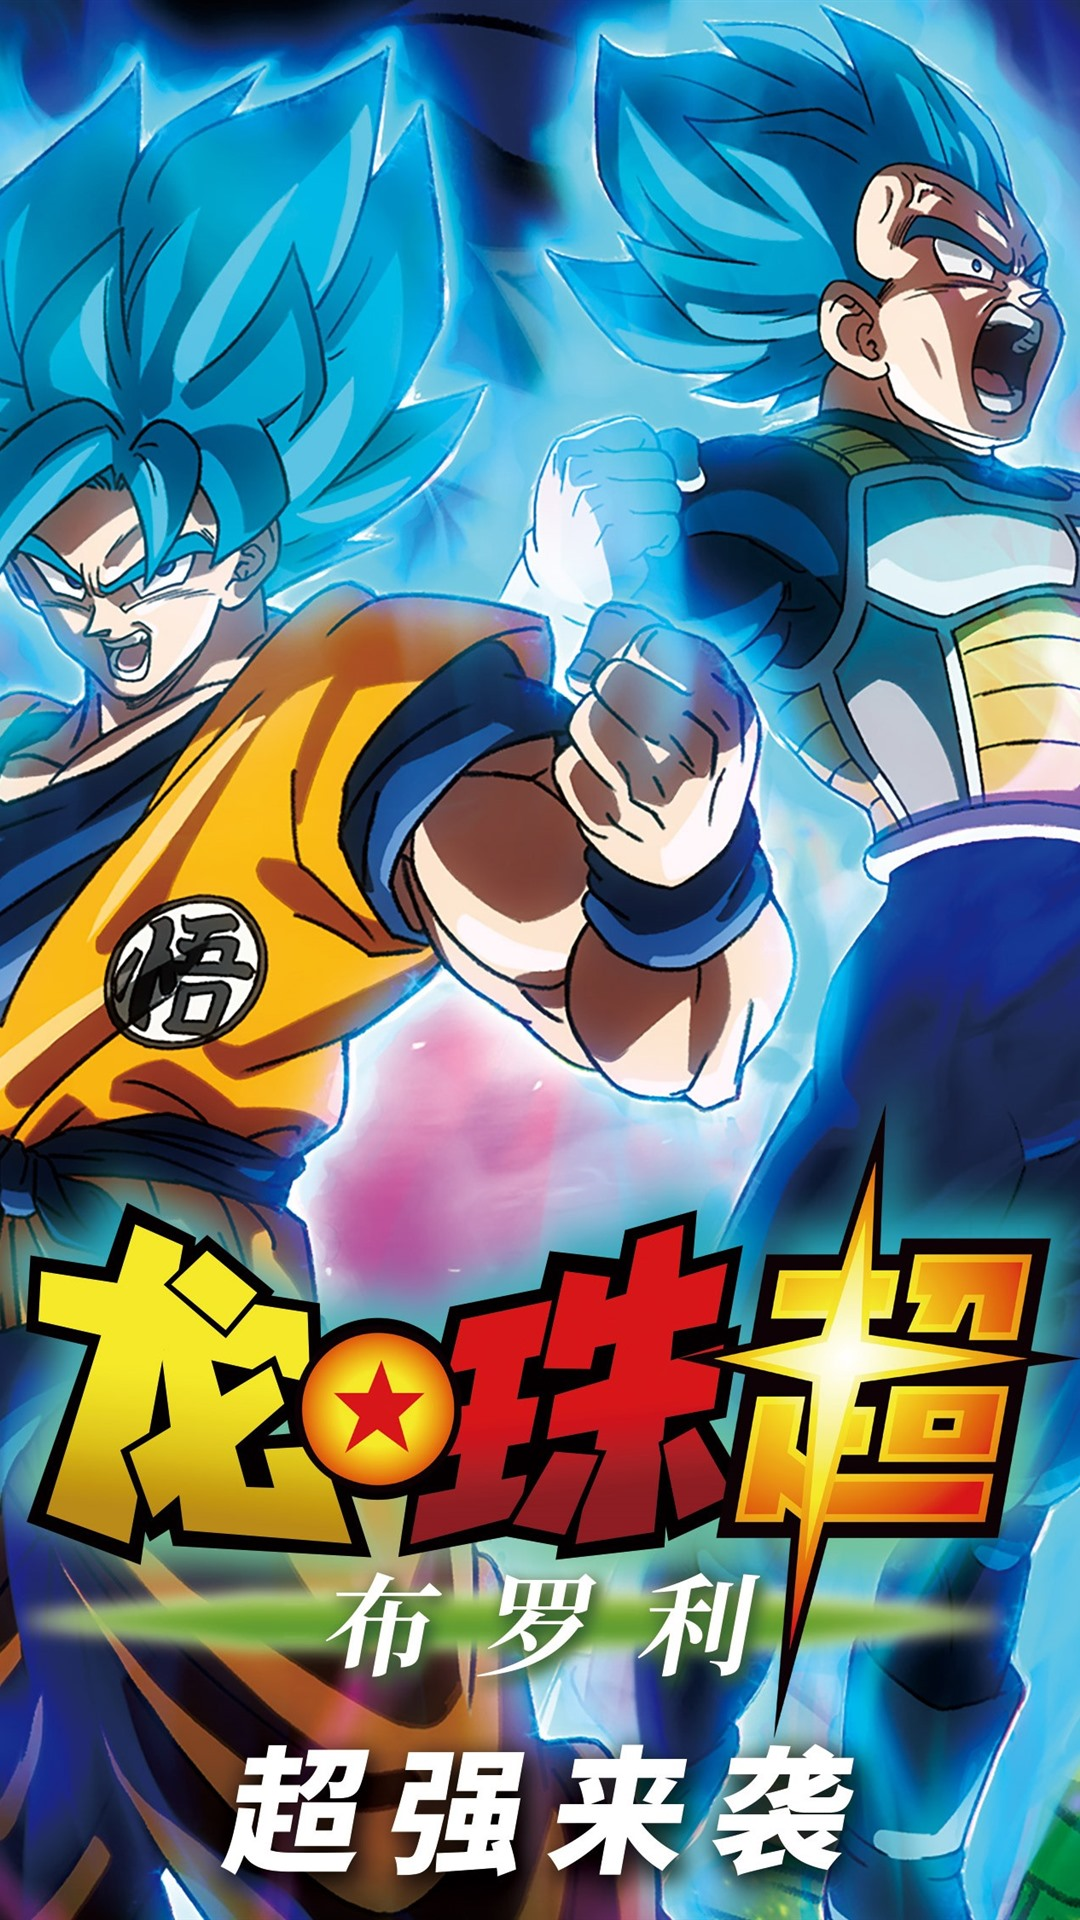 Dragon Ball Super Broly 1080x1920 iPhone 8766S Plus wallpaper 1080x1920